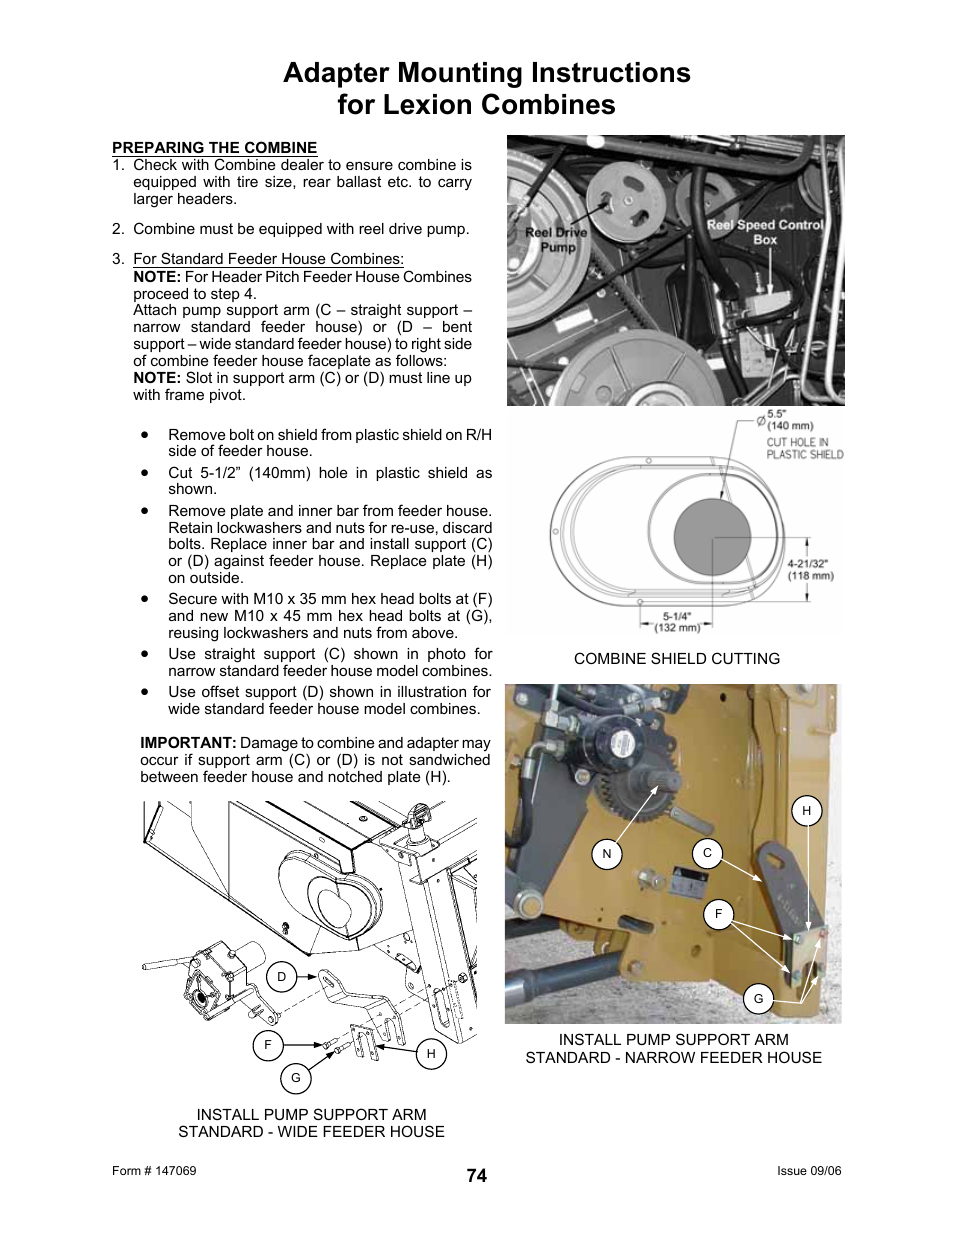 Adapter mounting instructions for lexion combines | MacDon